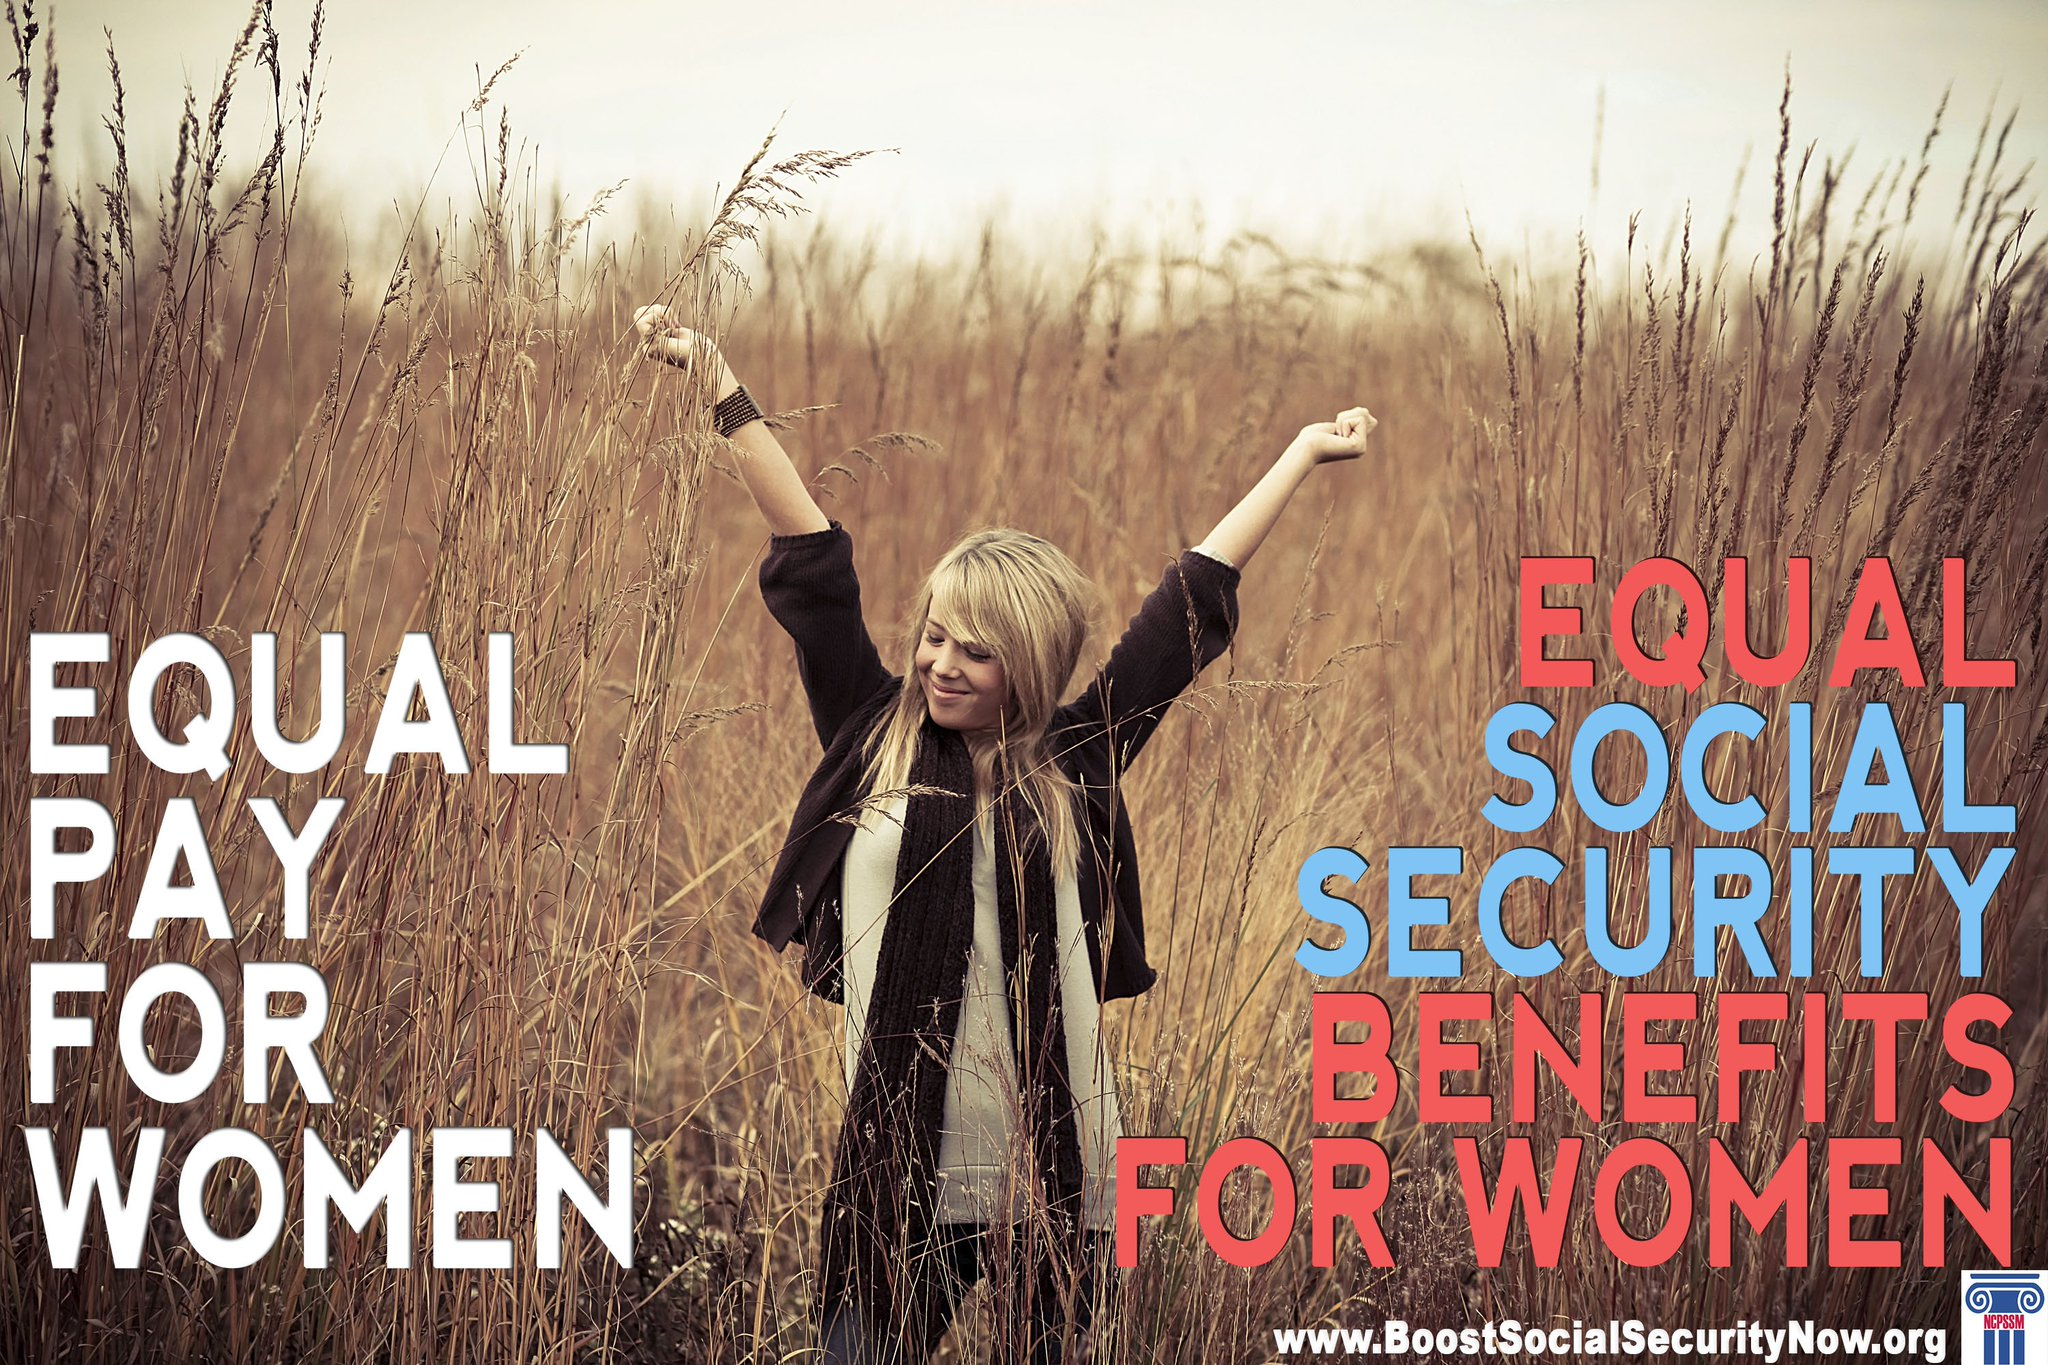 Today is #EqualPayDay -- Remember, Equal Pay for women = Equal #SocialSecurity benefits for women. https://t.co/t2zlkhr52Y